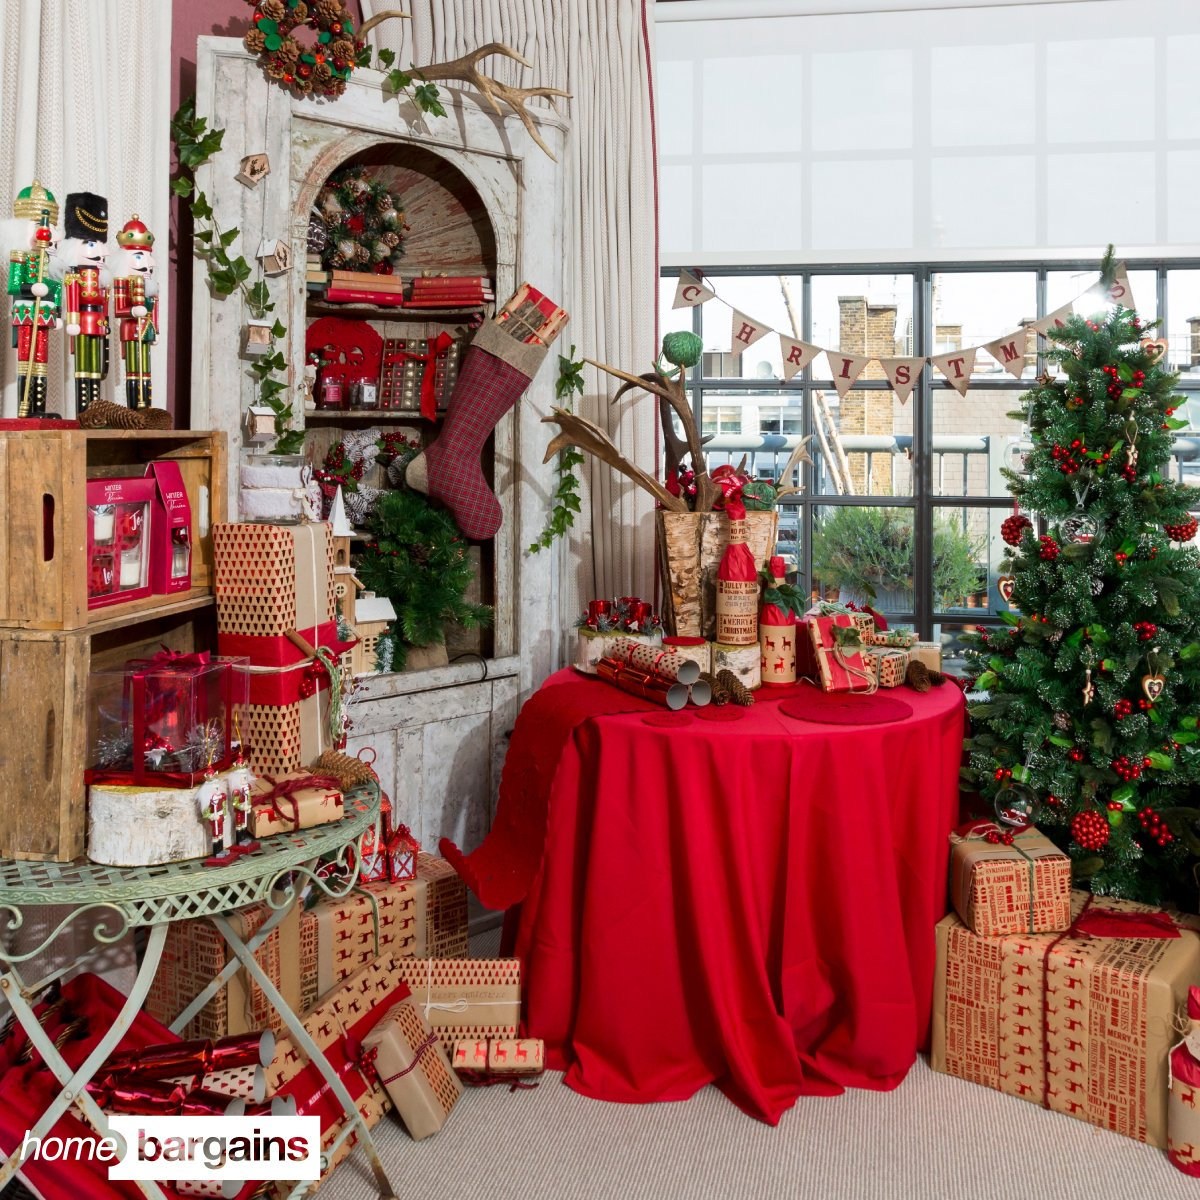 Christmas Decorations At Home Bargains